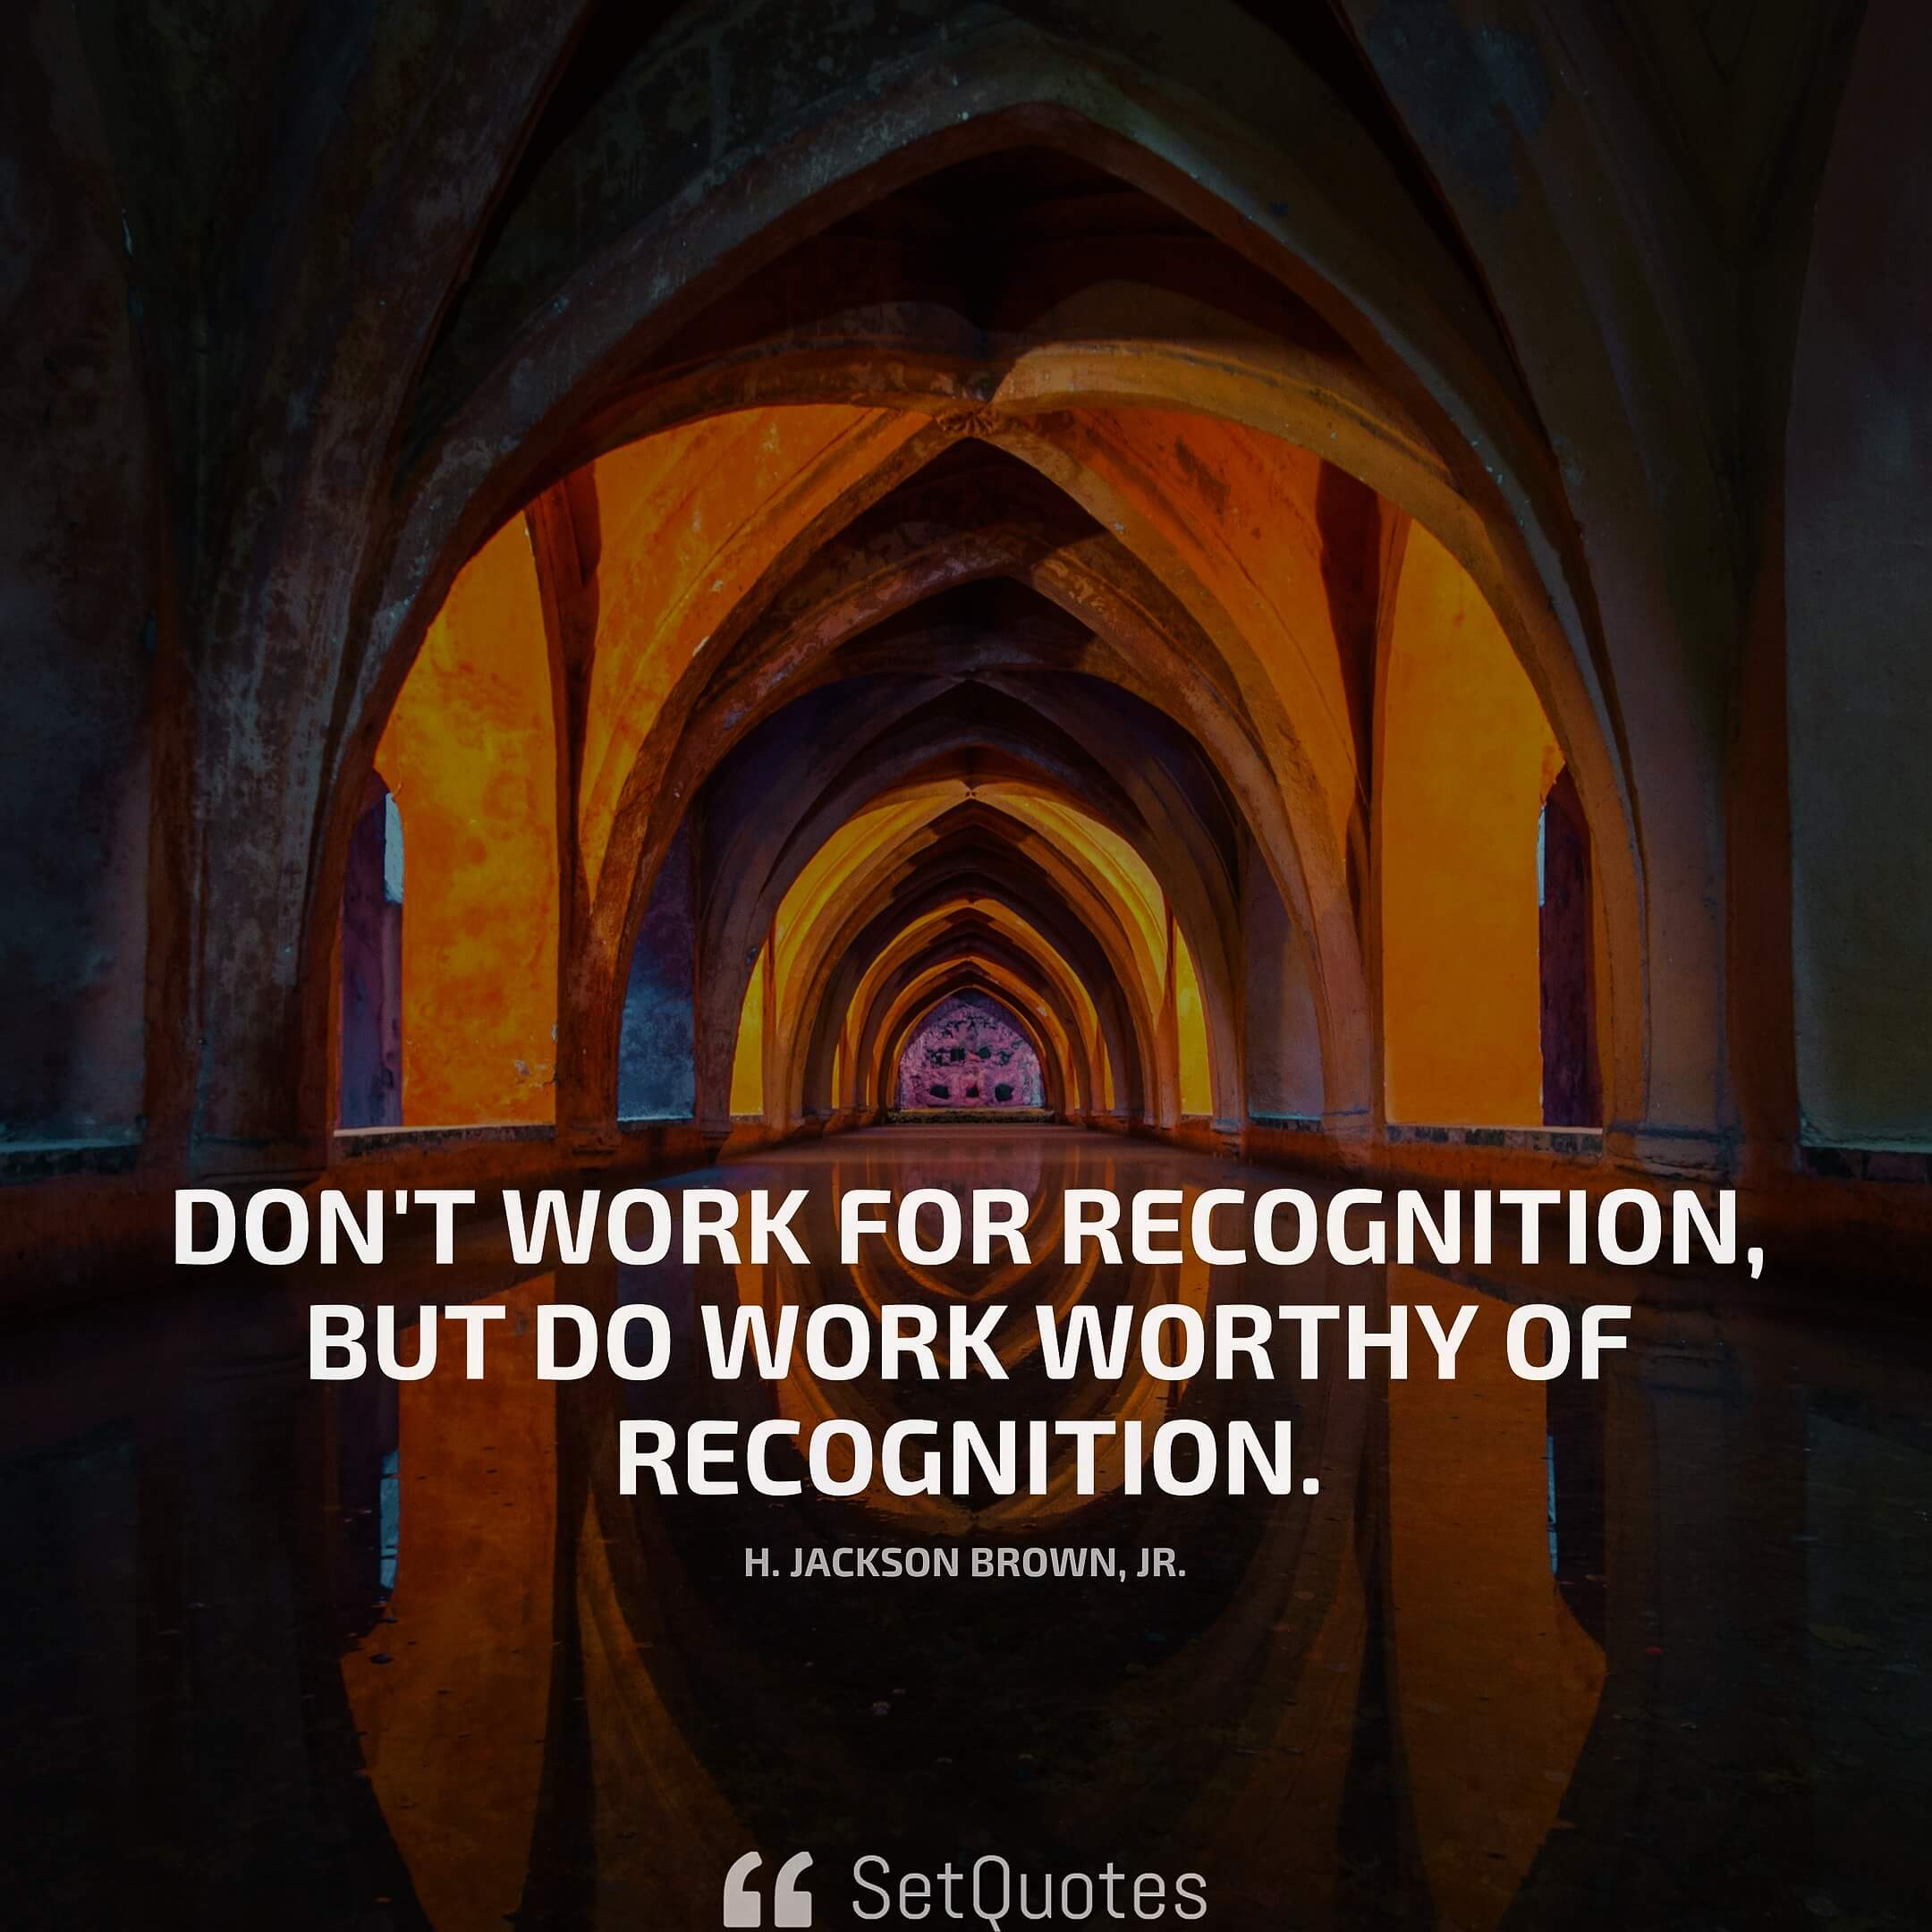 Don't work for recognition, but do work worthy of recognition. - H. Jackson Brown, Jr.